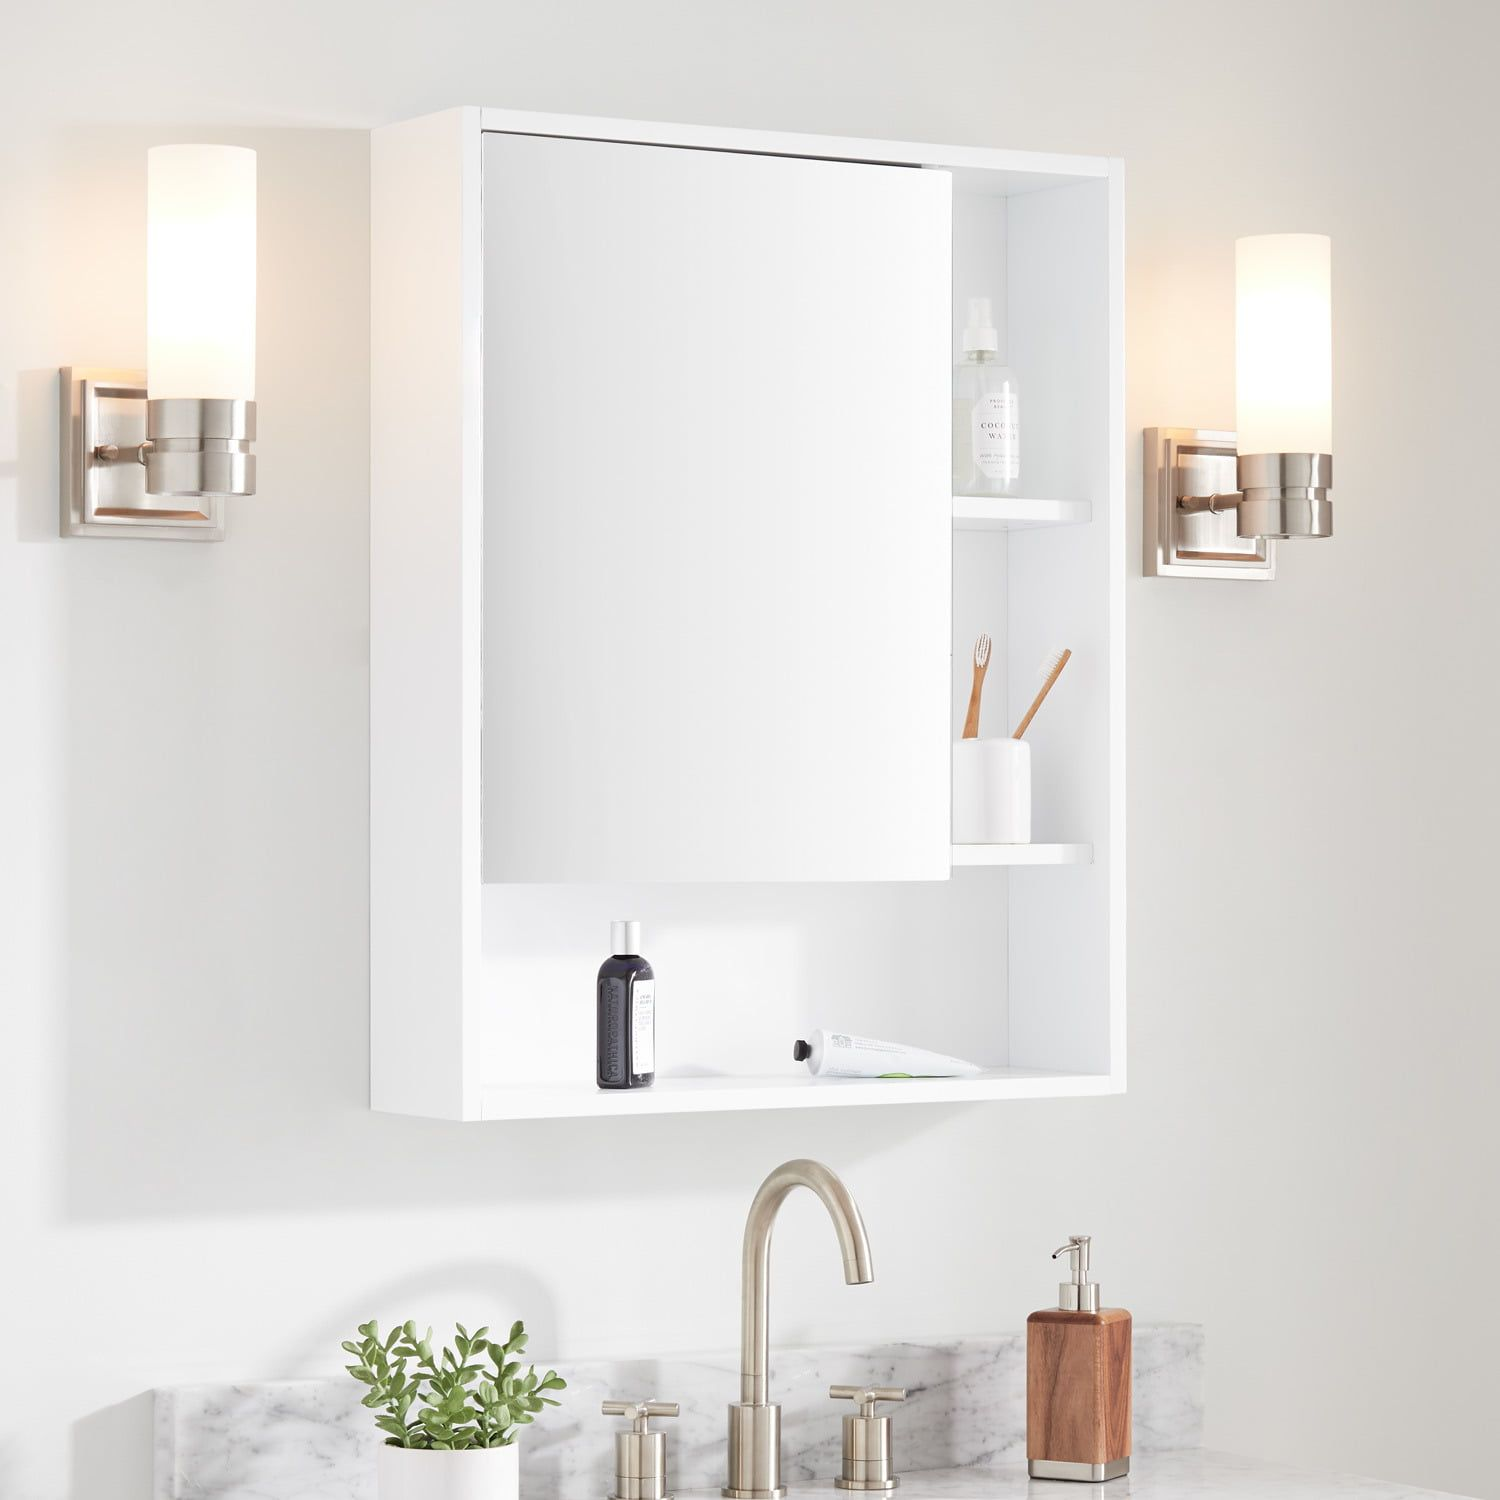 Featuring A Bright White Finish The Teague Medicine Cabinet Is A Lovely Addition T Small White Bathroom Cabinet White Medicine Cabinet White Bathroom Cabinets